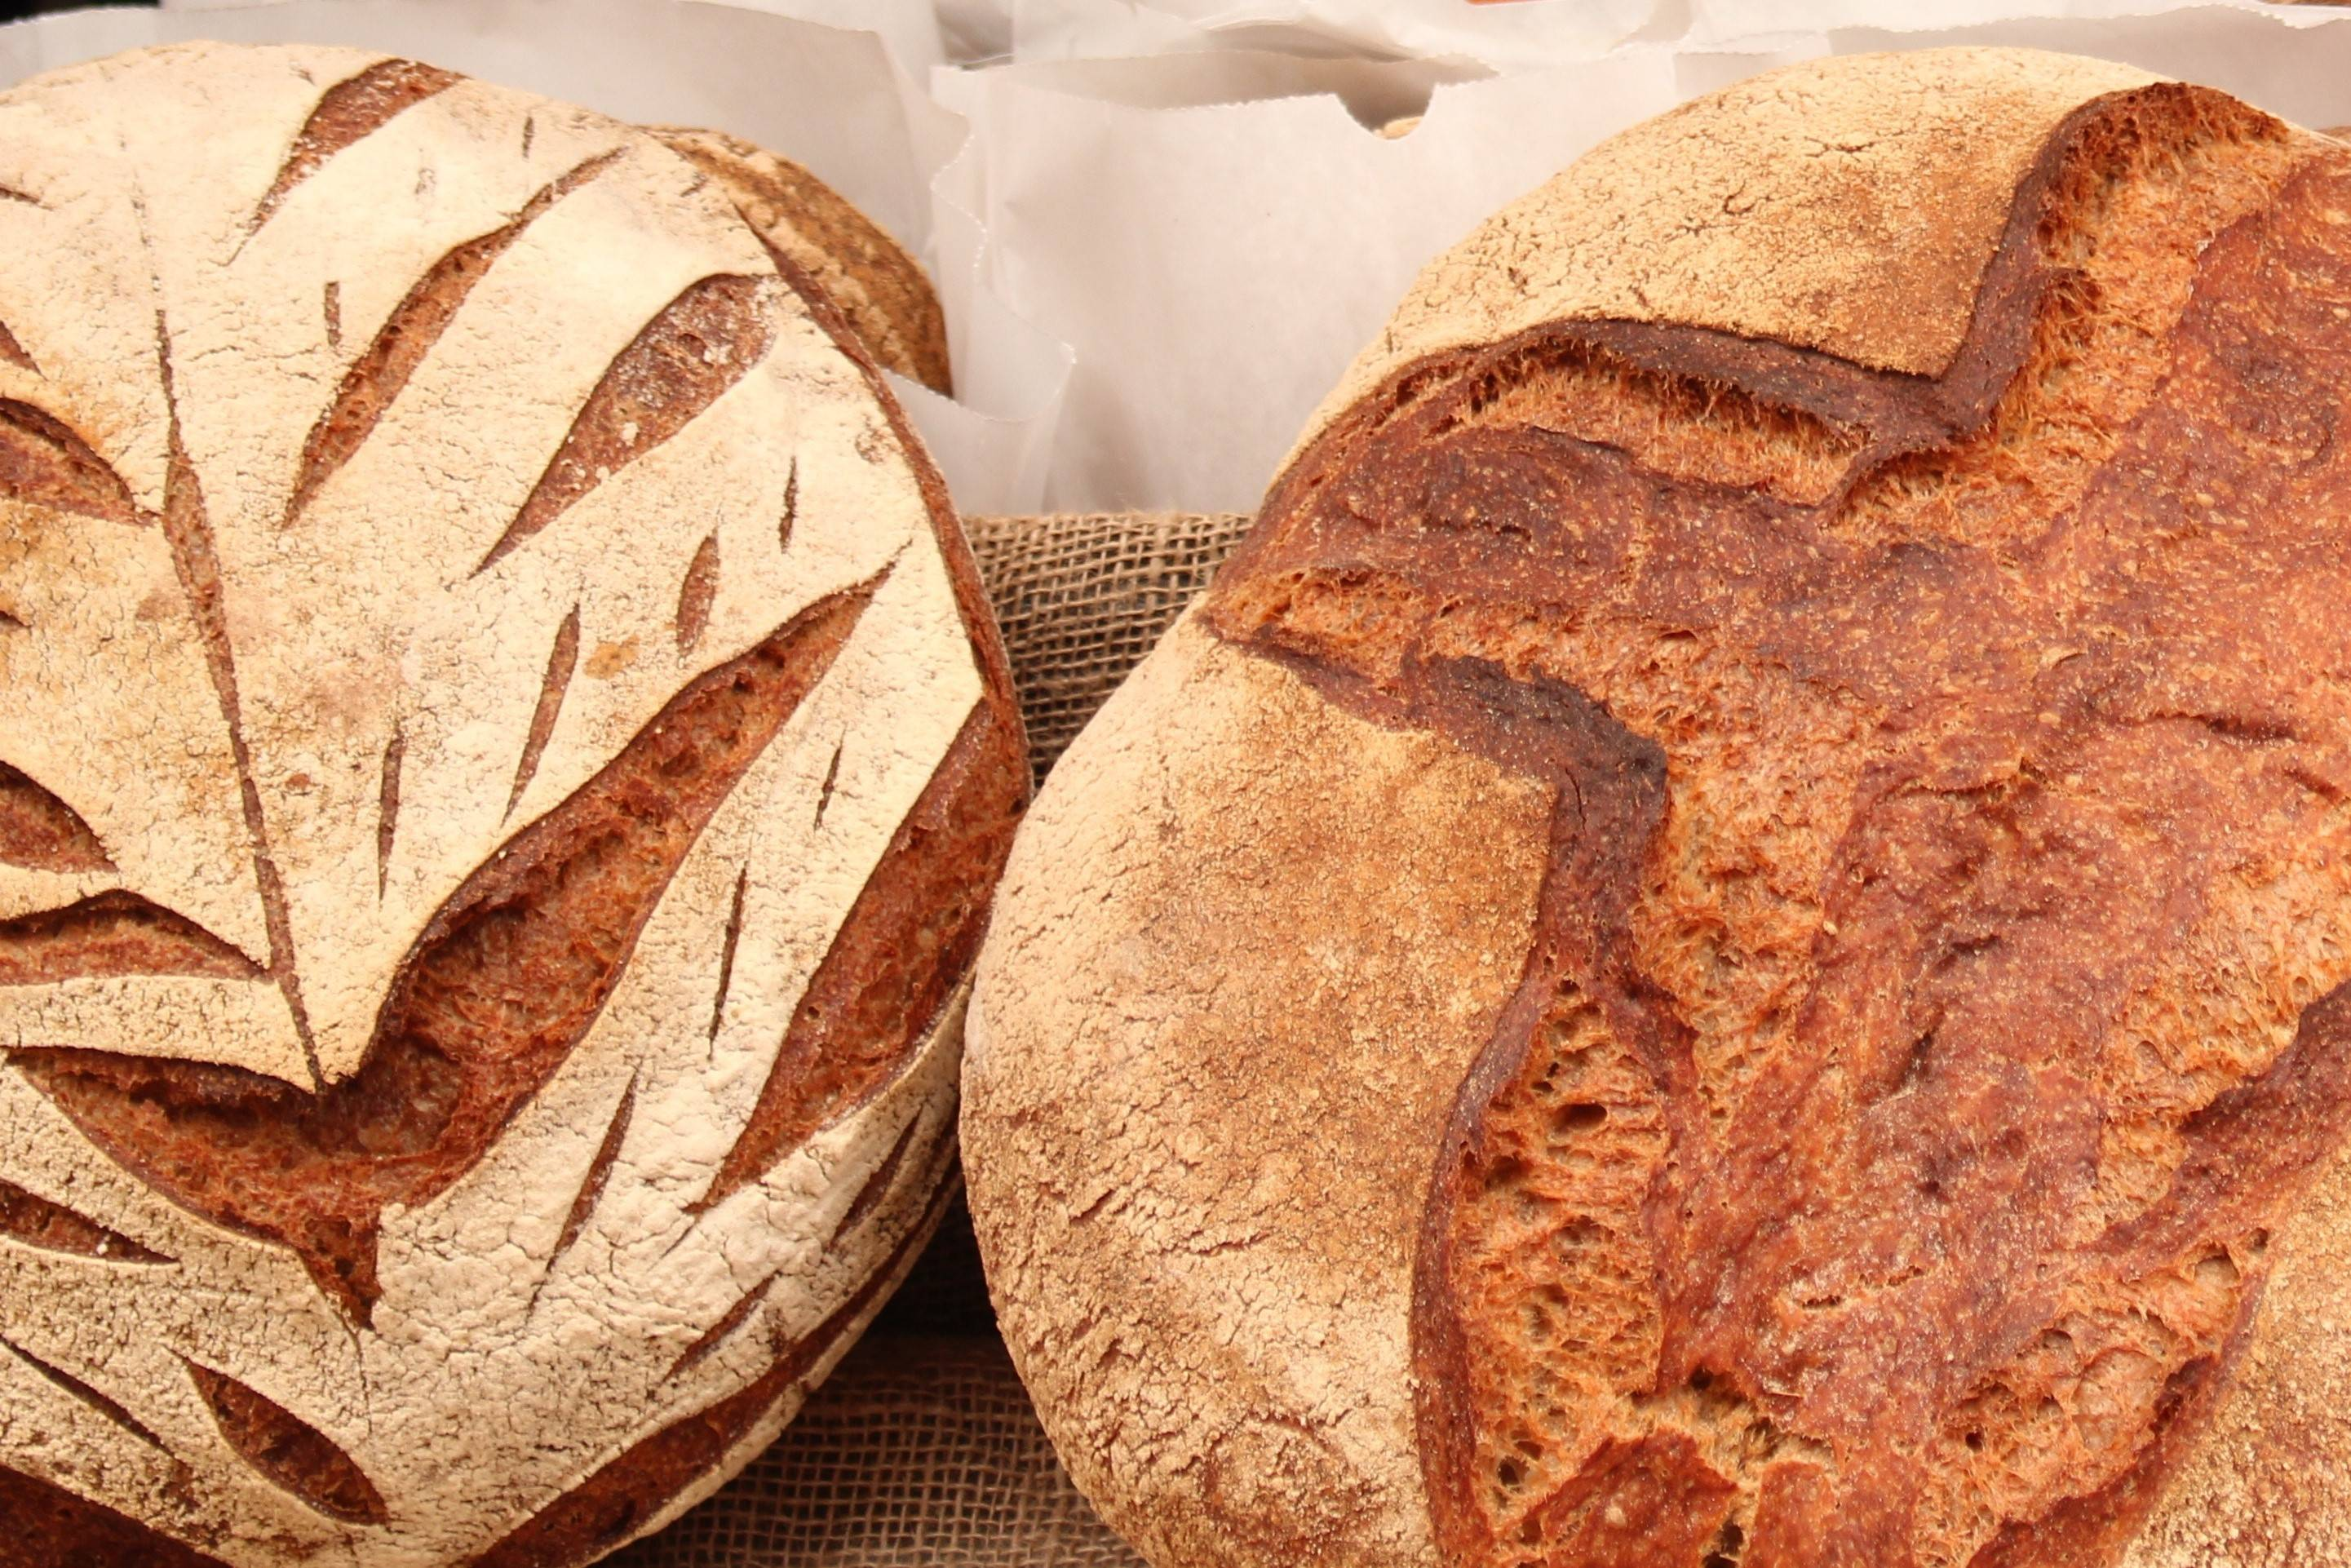 Bannetons (Bread Proofing Baskets)